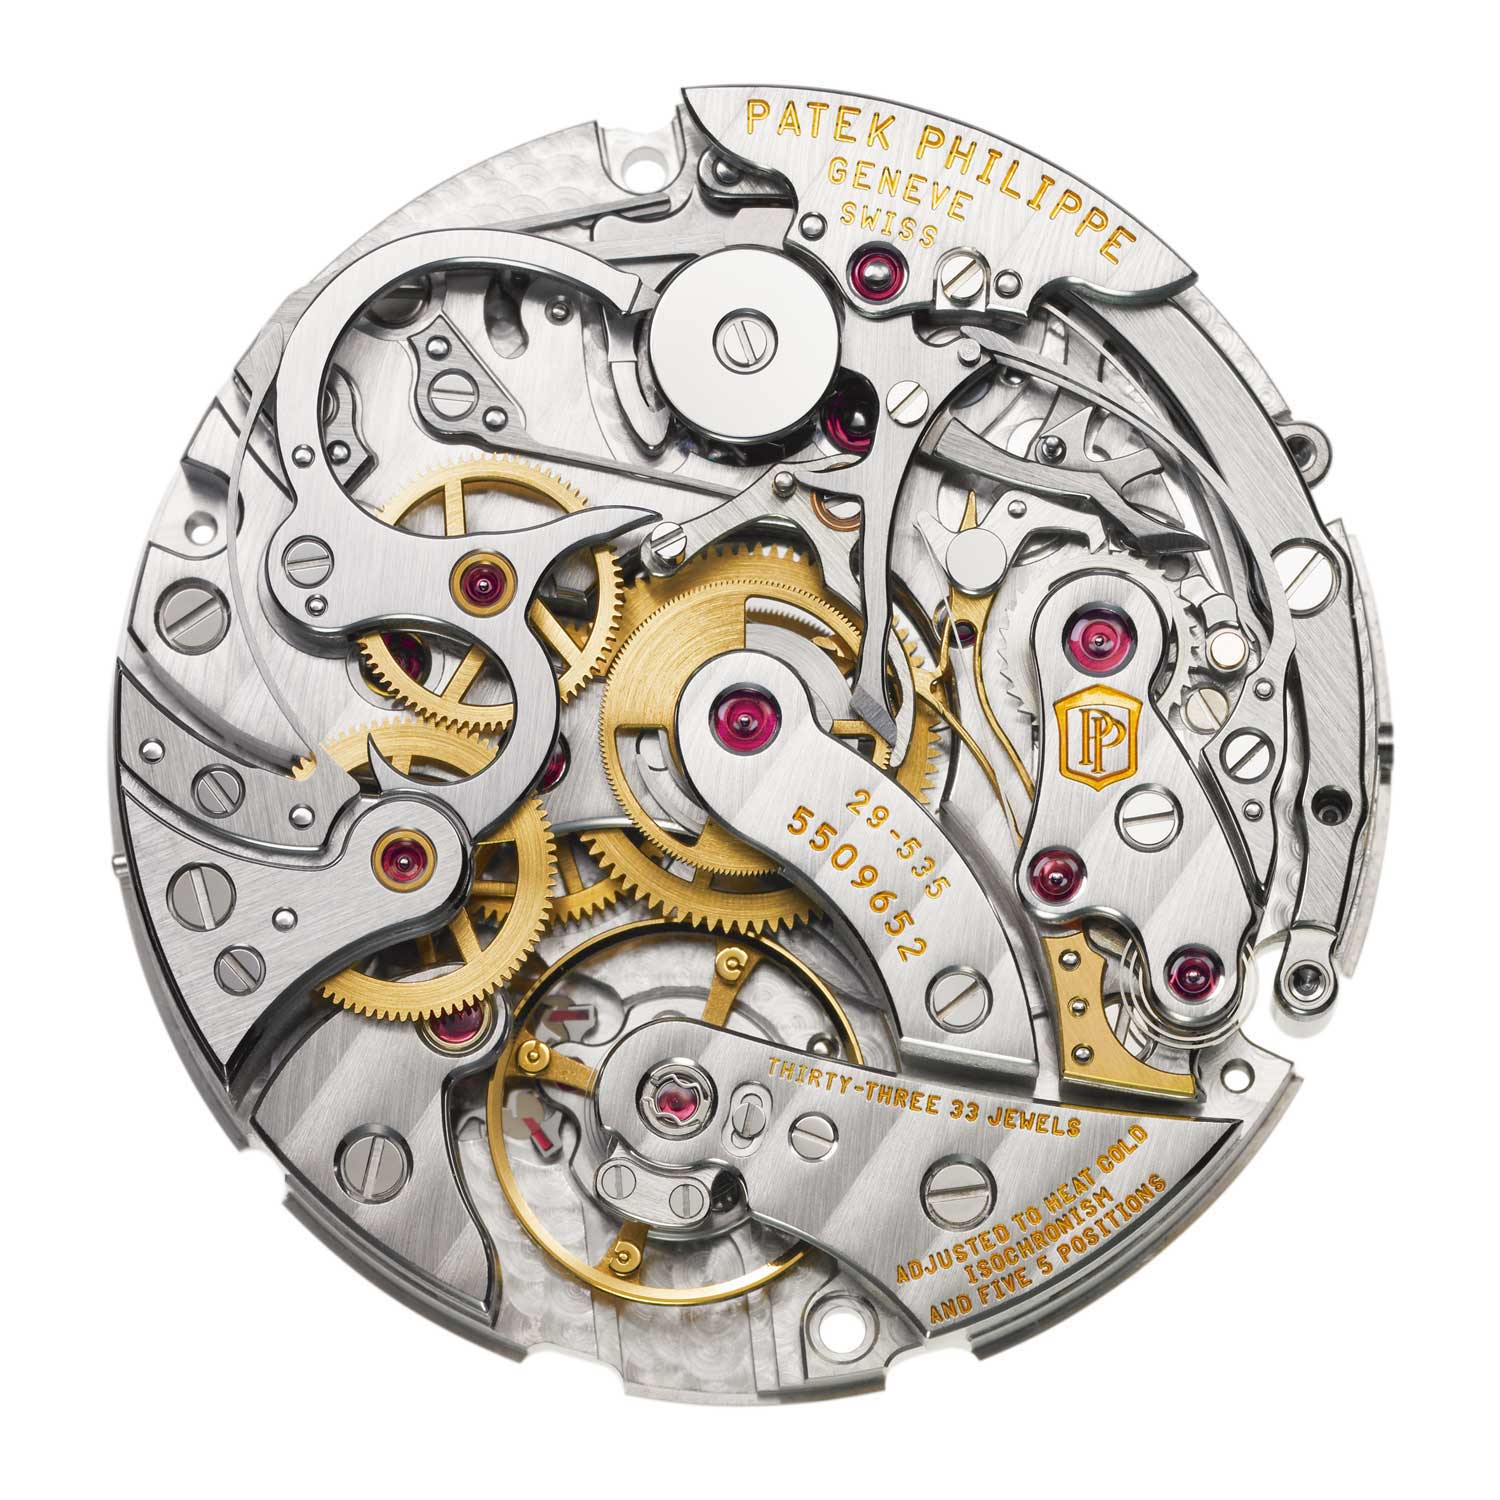 Patek Philippe 29-535 This famous, six-patent-bearing, horizontal-coupling caliber has served since 2009 as the workhorse for the refined manual-wind Patek chronographs. Note how the column wheel (at the top) is hidden behind a cap.